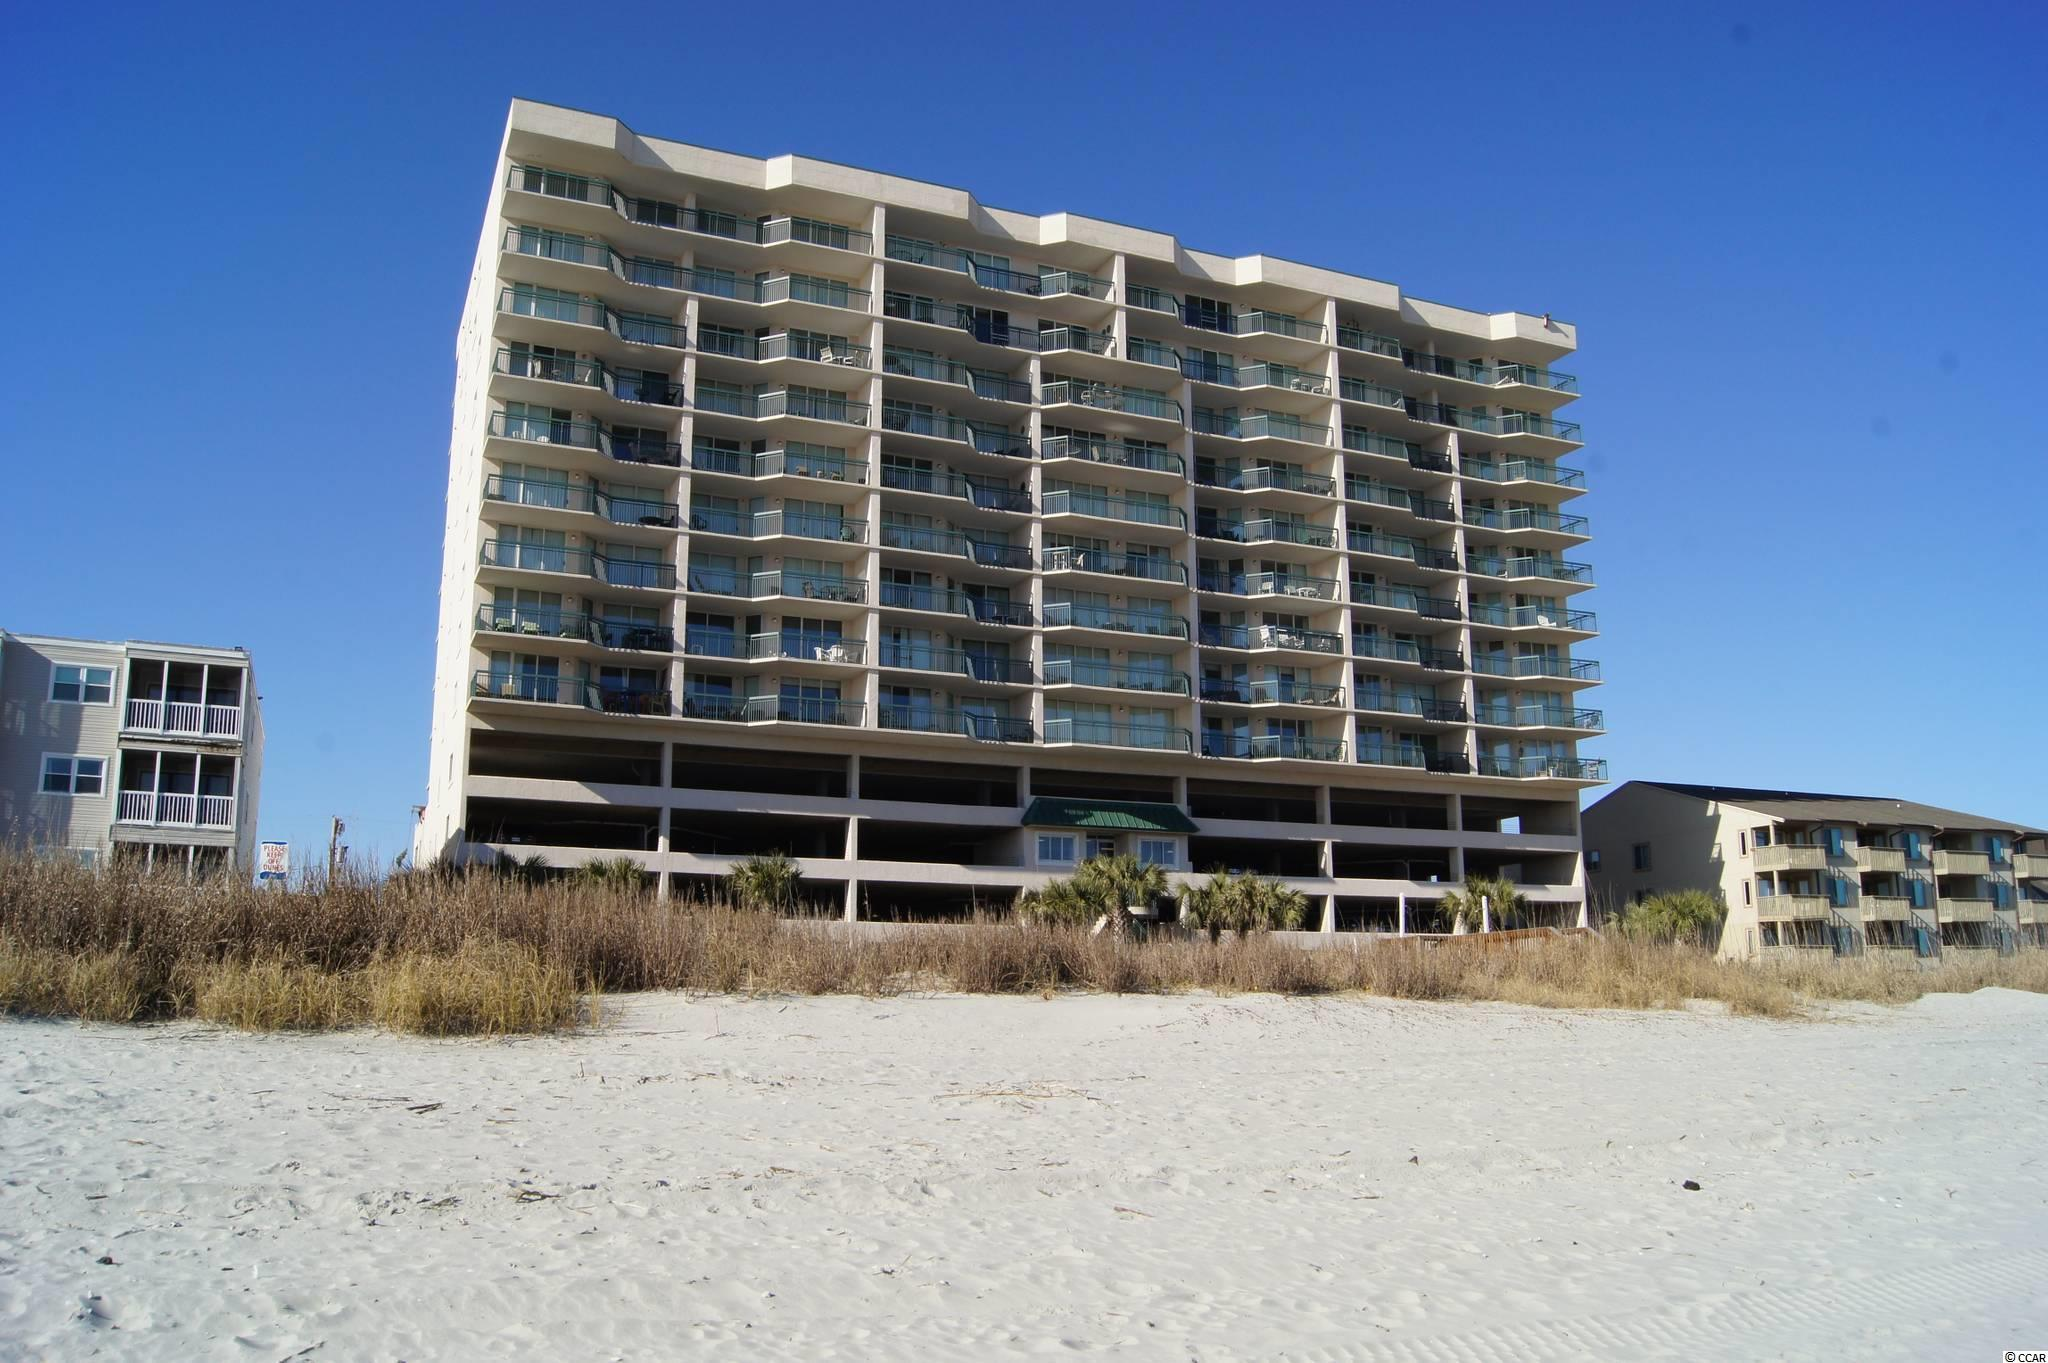 4 bdrm, oceanfront, corner condo in popular, Drake development. Conveniently located almost midway between Ocean Drive's & Crescent Beach's (17 Ave. S.) Main Streets, Northshore offers all on-site parking, swimming pool, lazy river, whirlpool, & oceanfront, ocean view exercise room. Exceptionally spacious for a non-penthouse condominium, with windows on 3 sides, & balconies on 2, this 9th floor condo offers a panoramic view, due to the short height of the building next door. 5 flat screen TV's. 2 walk-in closets. Master bath has walk-in shower, whirlpool tub, & double sink vanity. Excellent rental history. New HVAC indoor & outdoor units 6-16. H2O heater 12-20. Refrigerator, 8-18. Range, 2016. Microwave 6-18. Washer 10-16. Dryer 7-21. Sleeper-sofa, loveseat, table lamps, living room artwork, dining table & 6 chairs, + dining table and 4 chairs for balcony 2019. New hutches for living room and master bedroom to support flat screen TV's 2017. Features, square footage, etc. not guaranteed. Buyer responsible for verification.